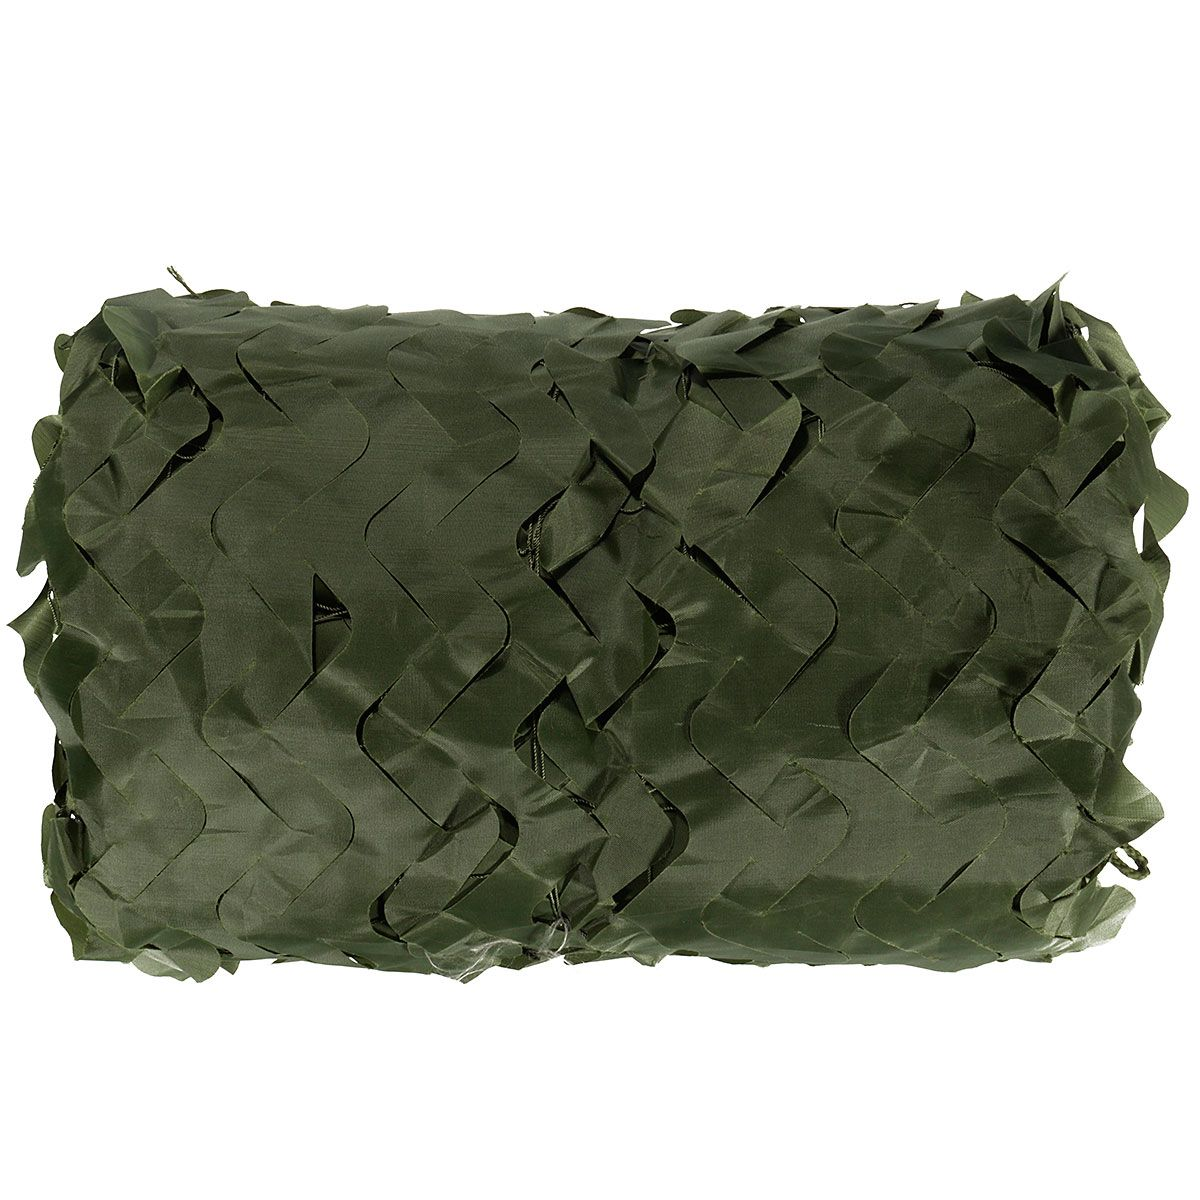 5 Colors Military Camouflage Net 5x3M Outdoor Camo Net for Hunting Covering Camping Woodlands Leaves Hide Sun Shelter  Car-cover